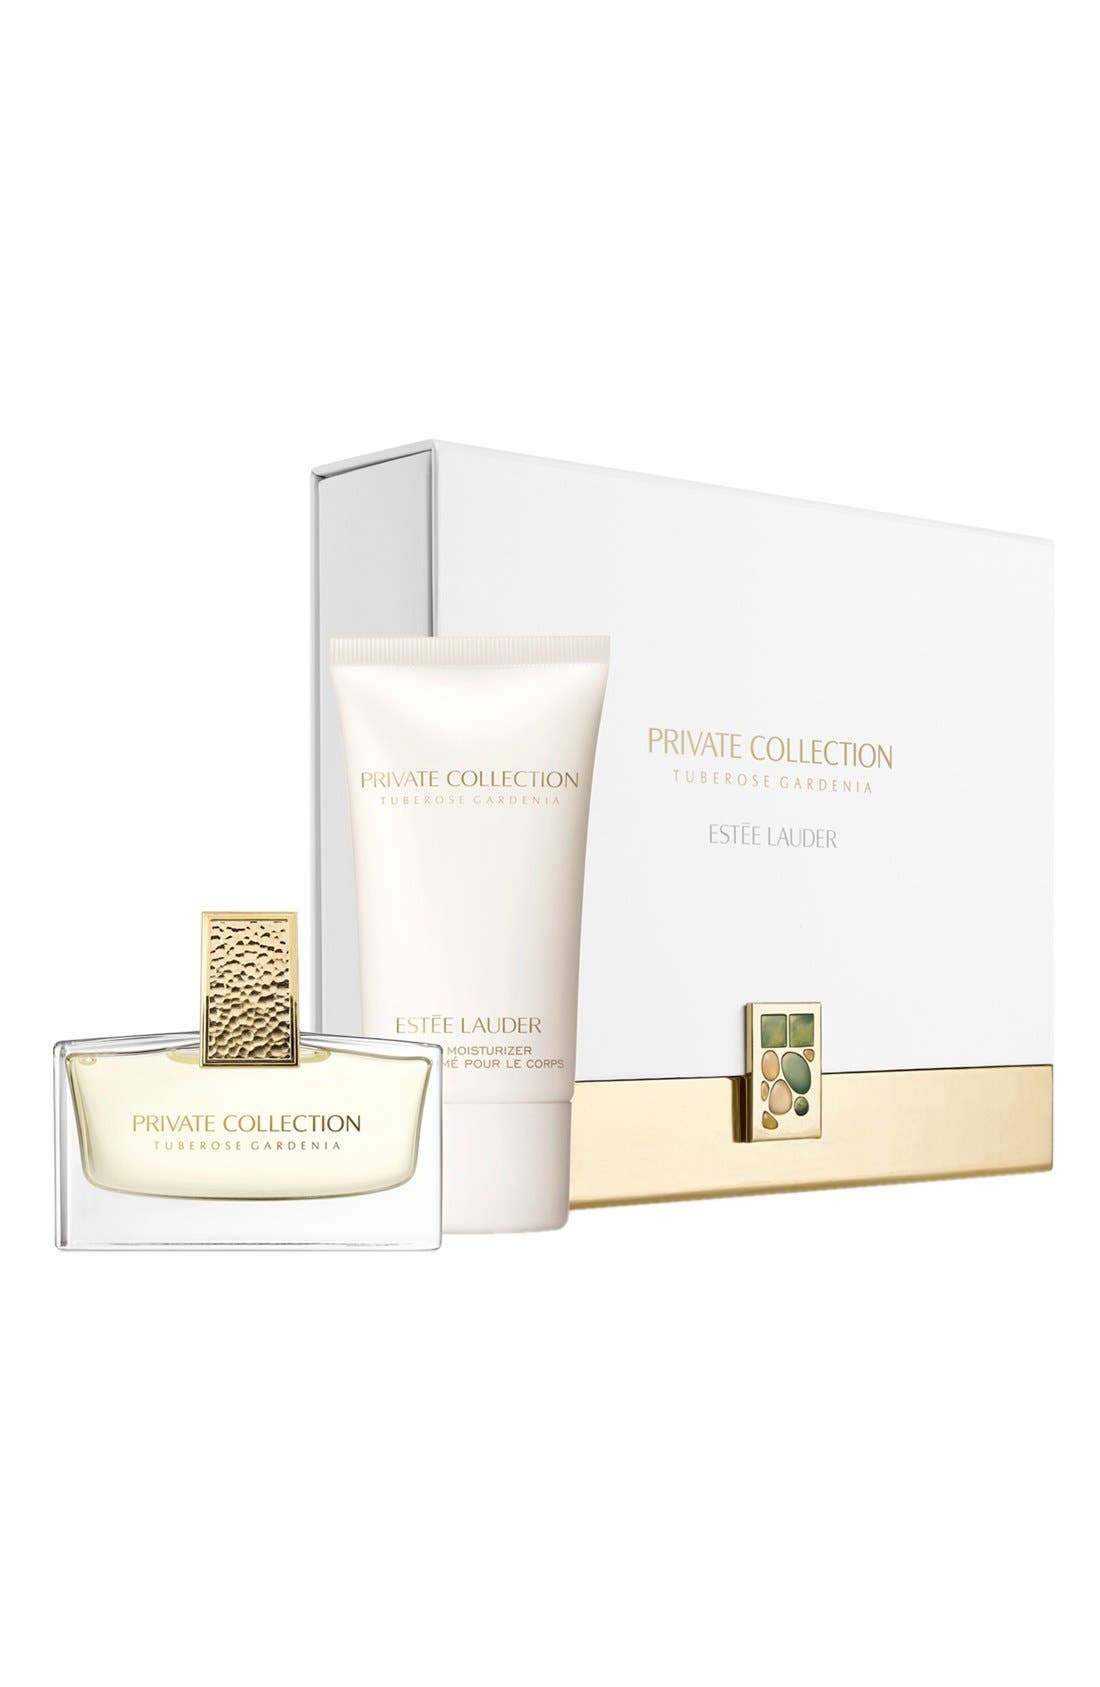 Estée Lauder 'Private Collection - Tuberose Gardenia' Duo (Limited Edition) ($117 Value)